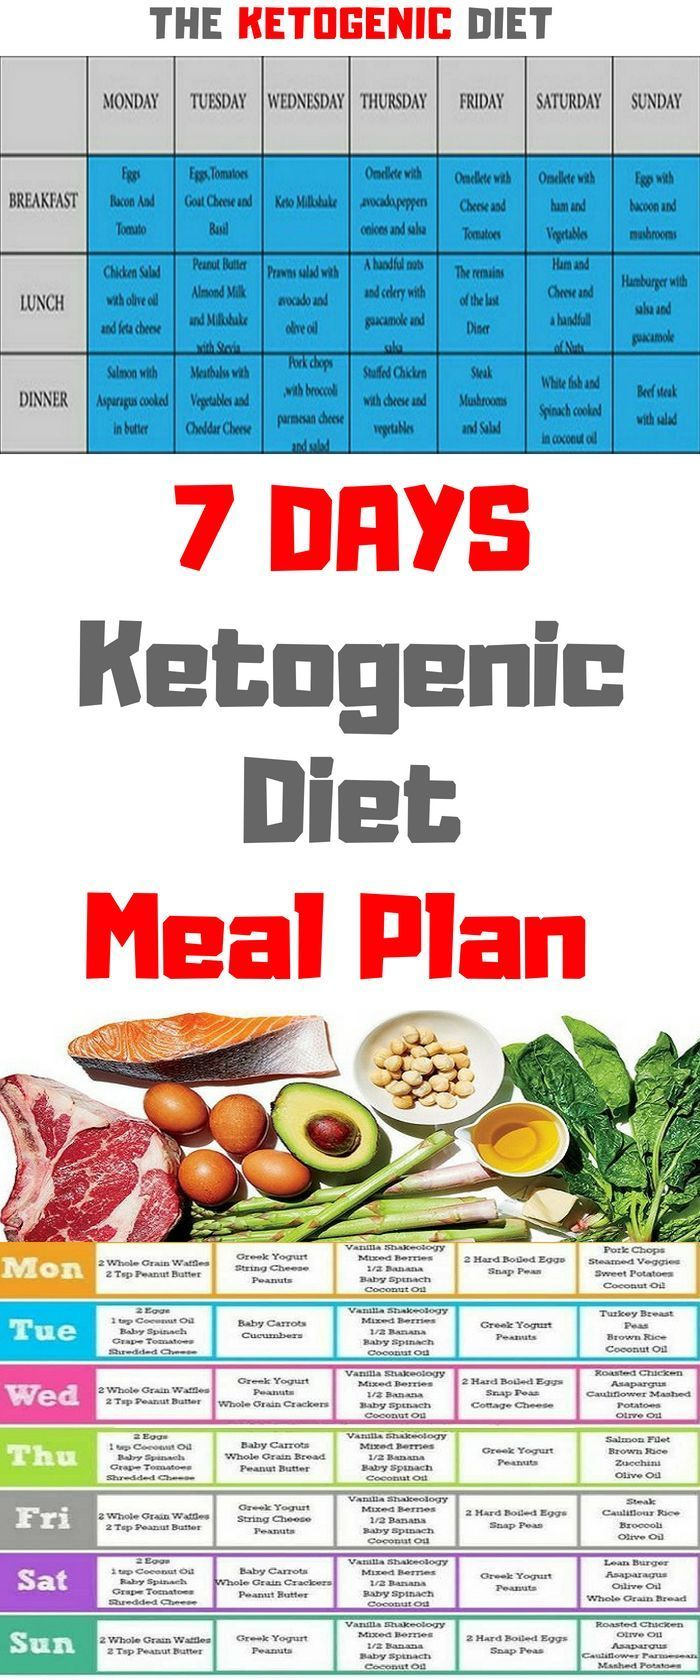 Keto Diet Plan: Here we are going to suggest you a widely known 7 day diet plan which is ketogen…